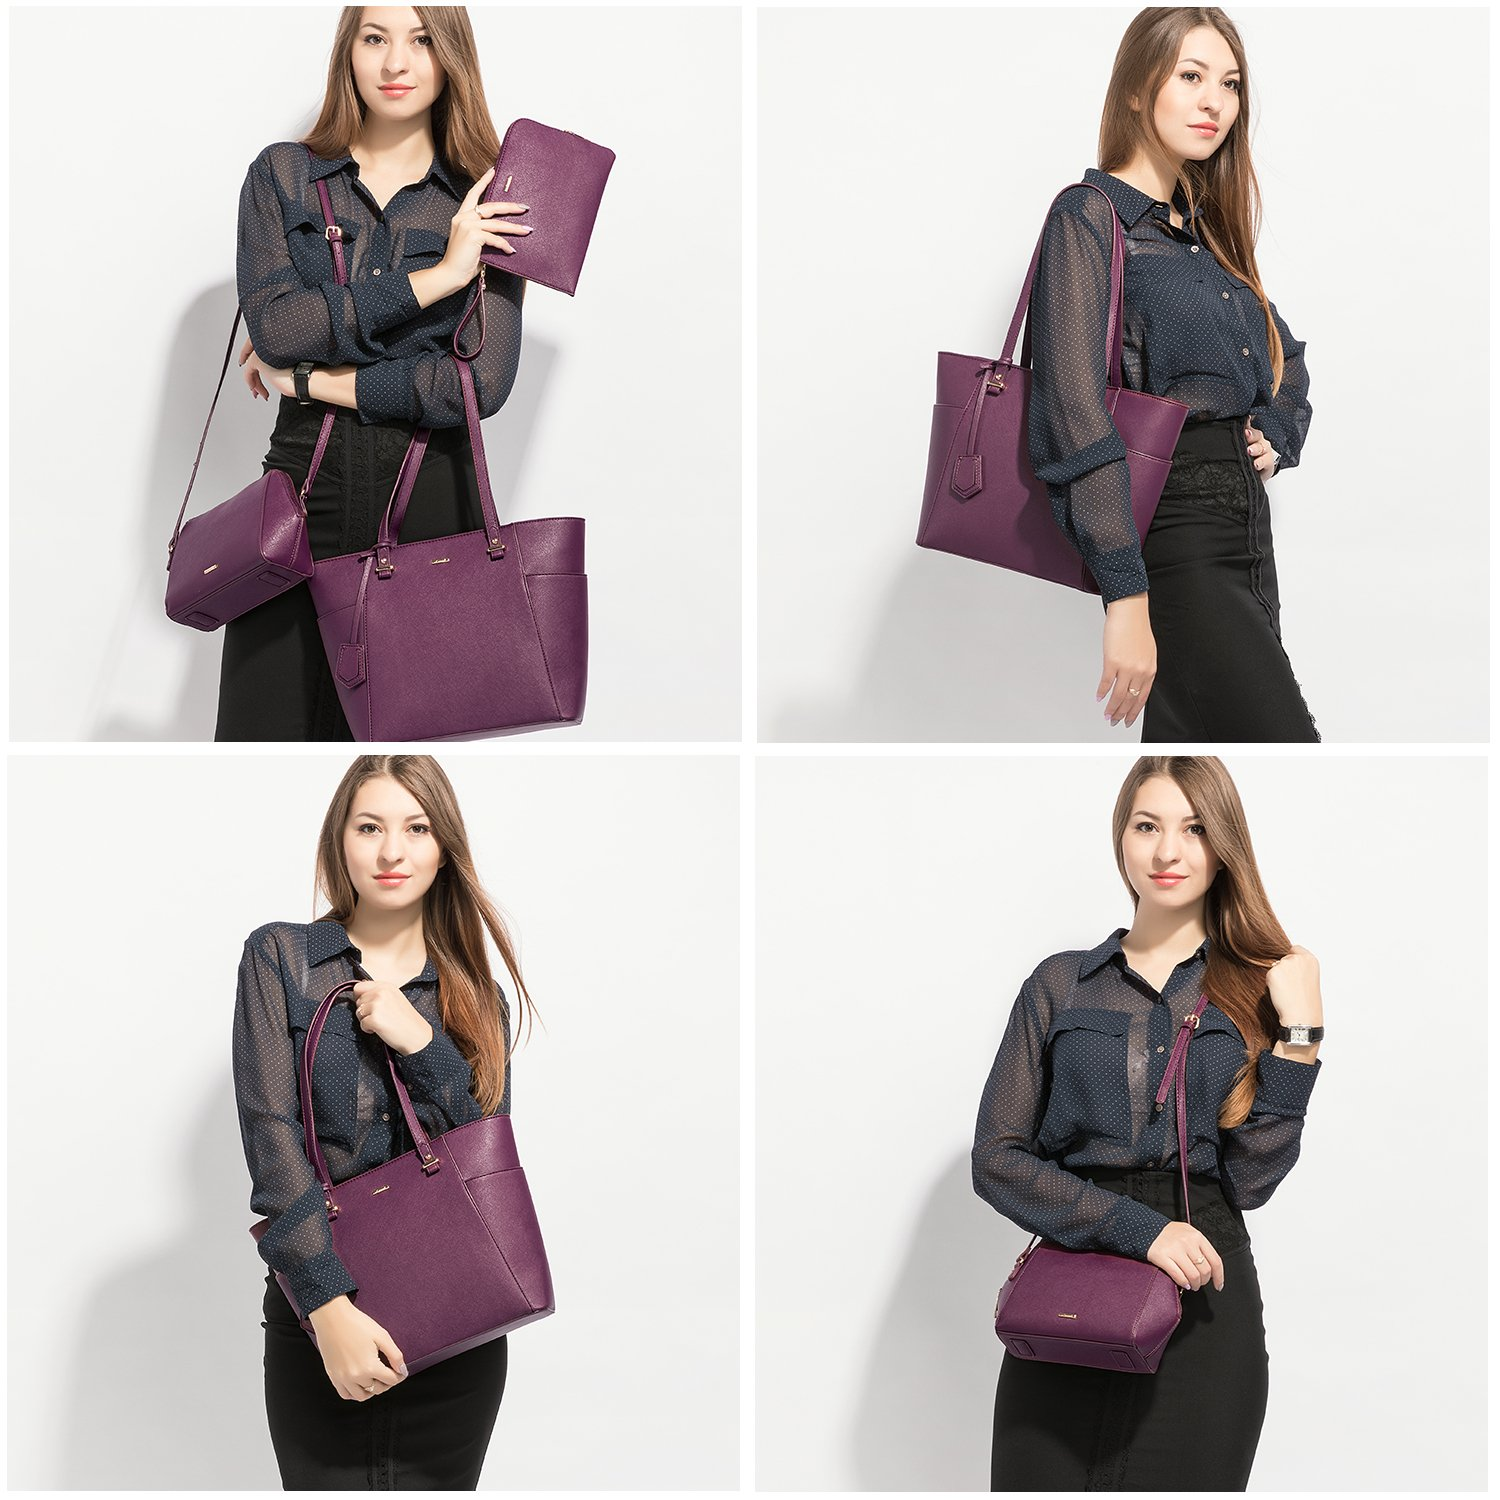 LOVEVOOK Women Purses and Handbags Chic Crossbody Bag Hobo 3pcs Large Capacity Purple by LOVEVOOK (Image #7)